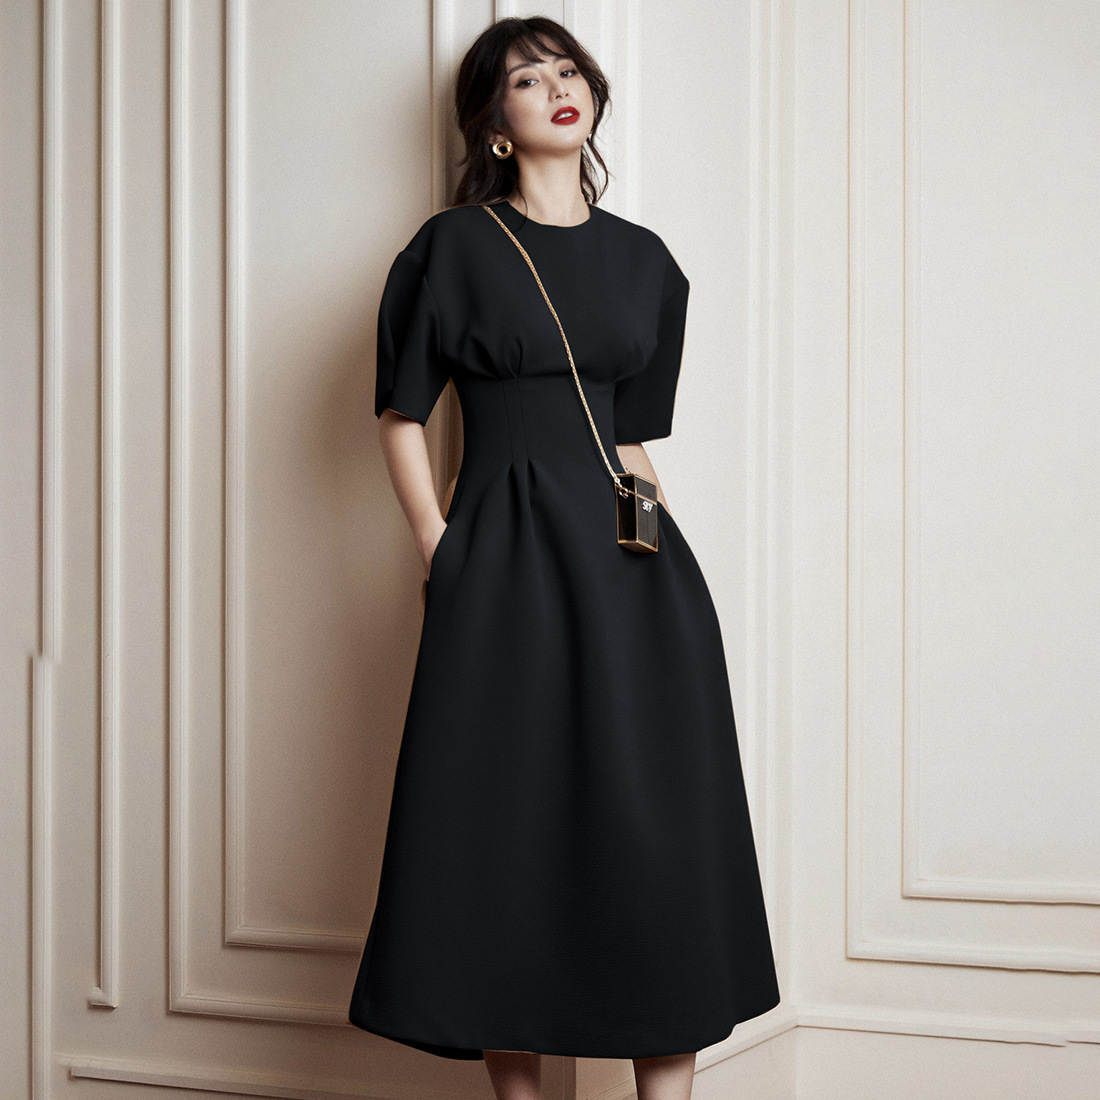 Midi A-Line Dress Women OL Clothes 2019 Work Party Night Puffy Sleeves Dresses Black Red Burgundy Vintage Holiday Summer Dress